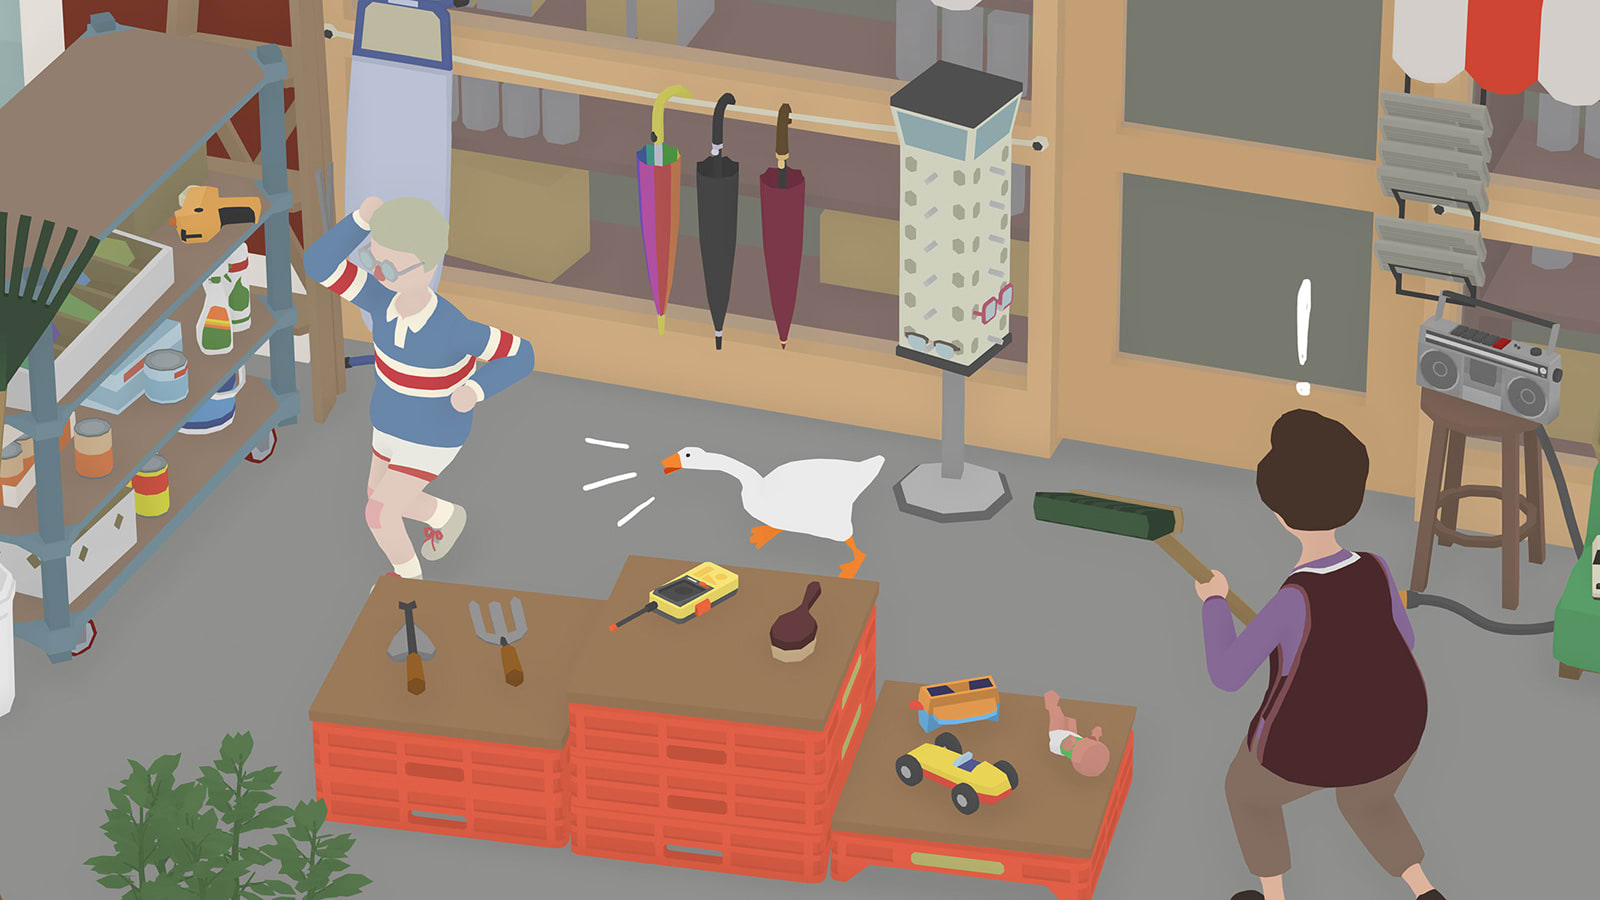 'Untitled Goose Game' honks its way to a million sales